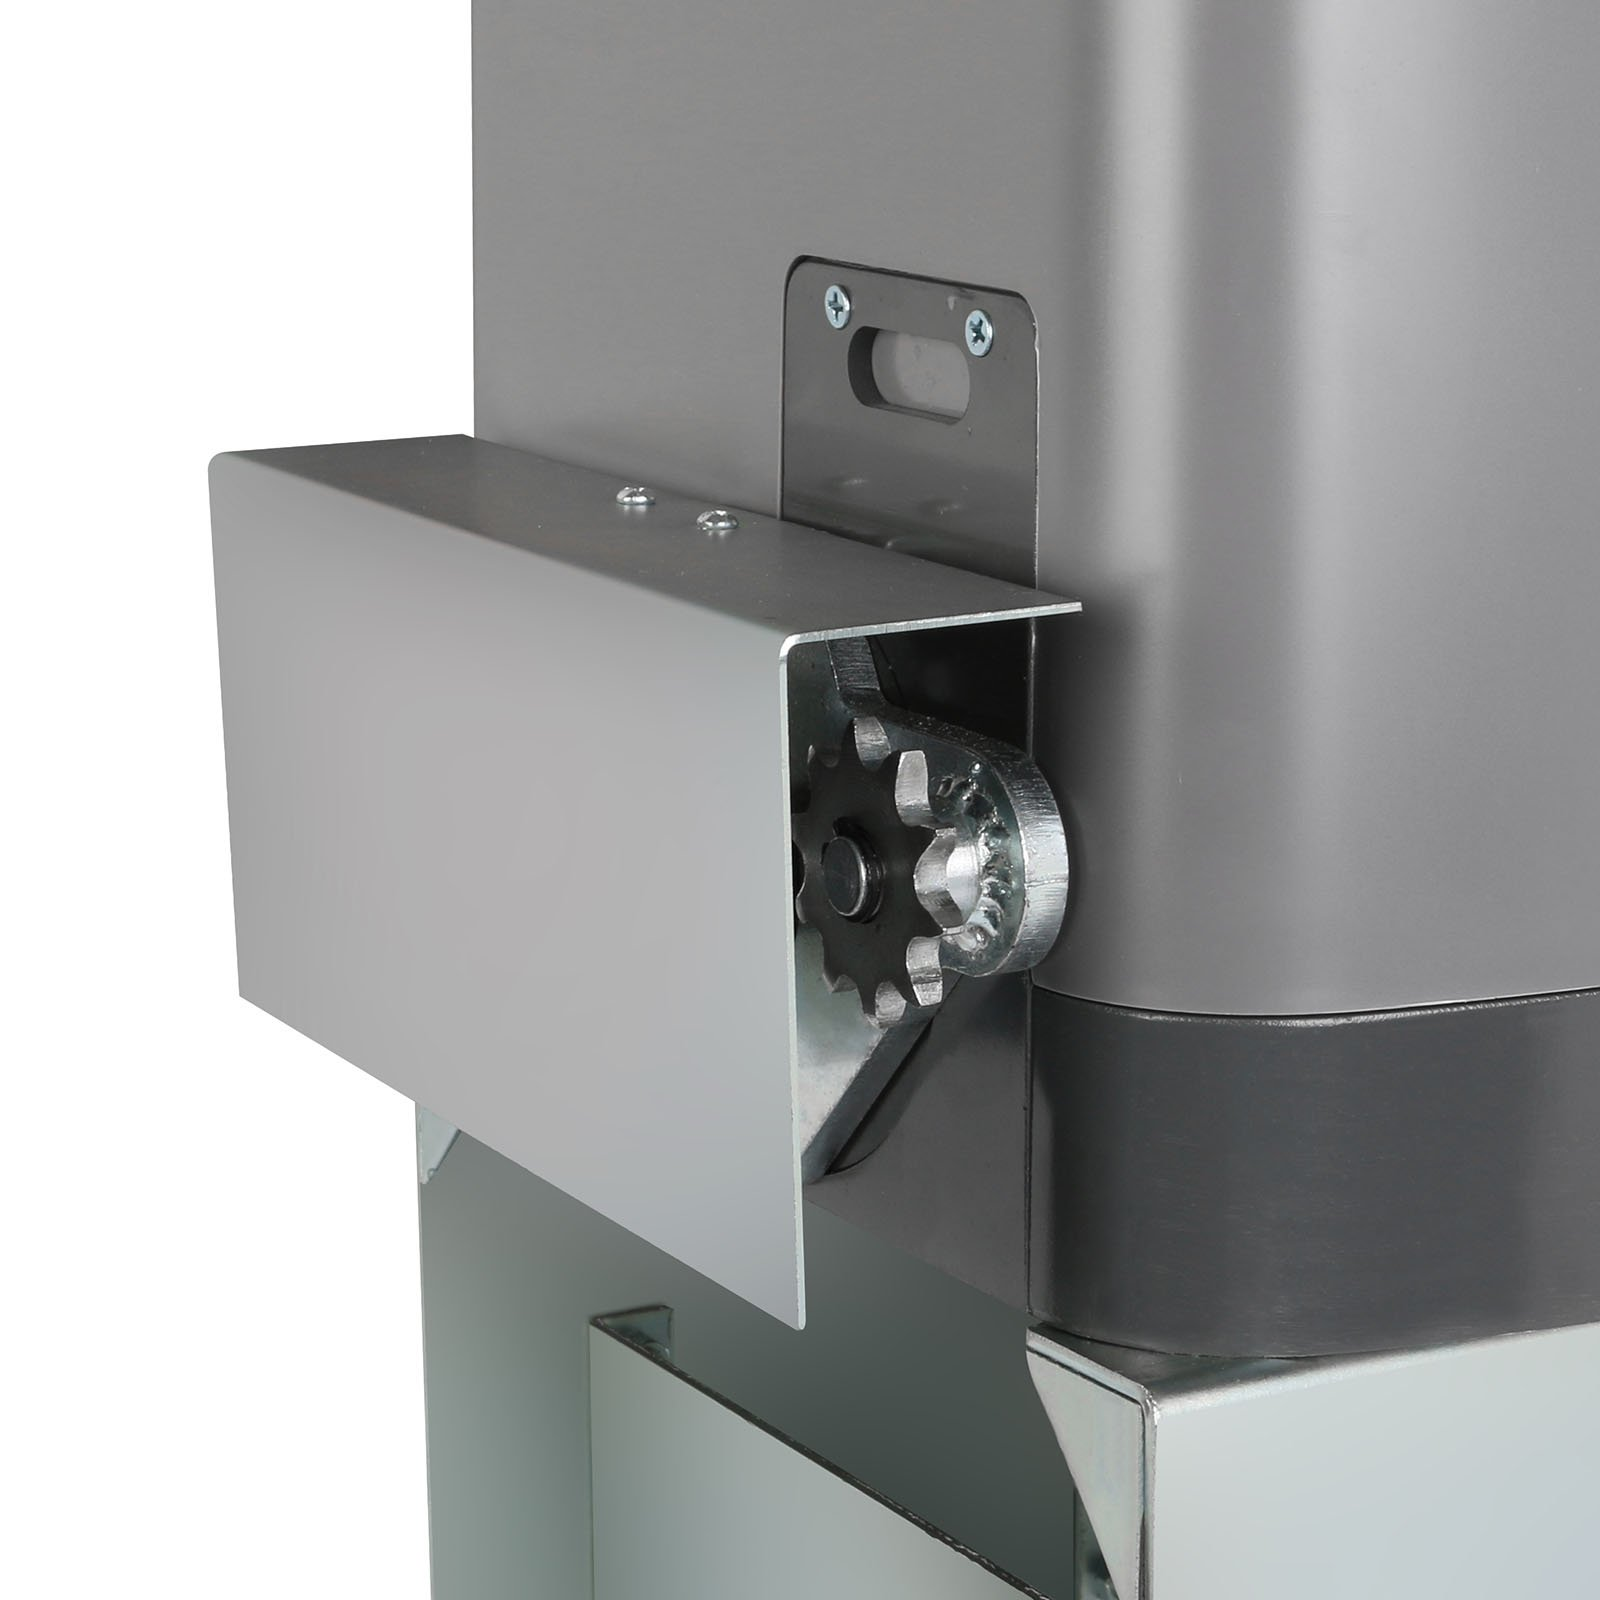 Mophorn AC1400 Sliding Gate Opener for Sliding Gates Up to 20ft Slide Gate Operator 3000LBS (AC1400) by Mophorn (Image #7)